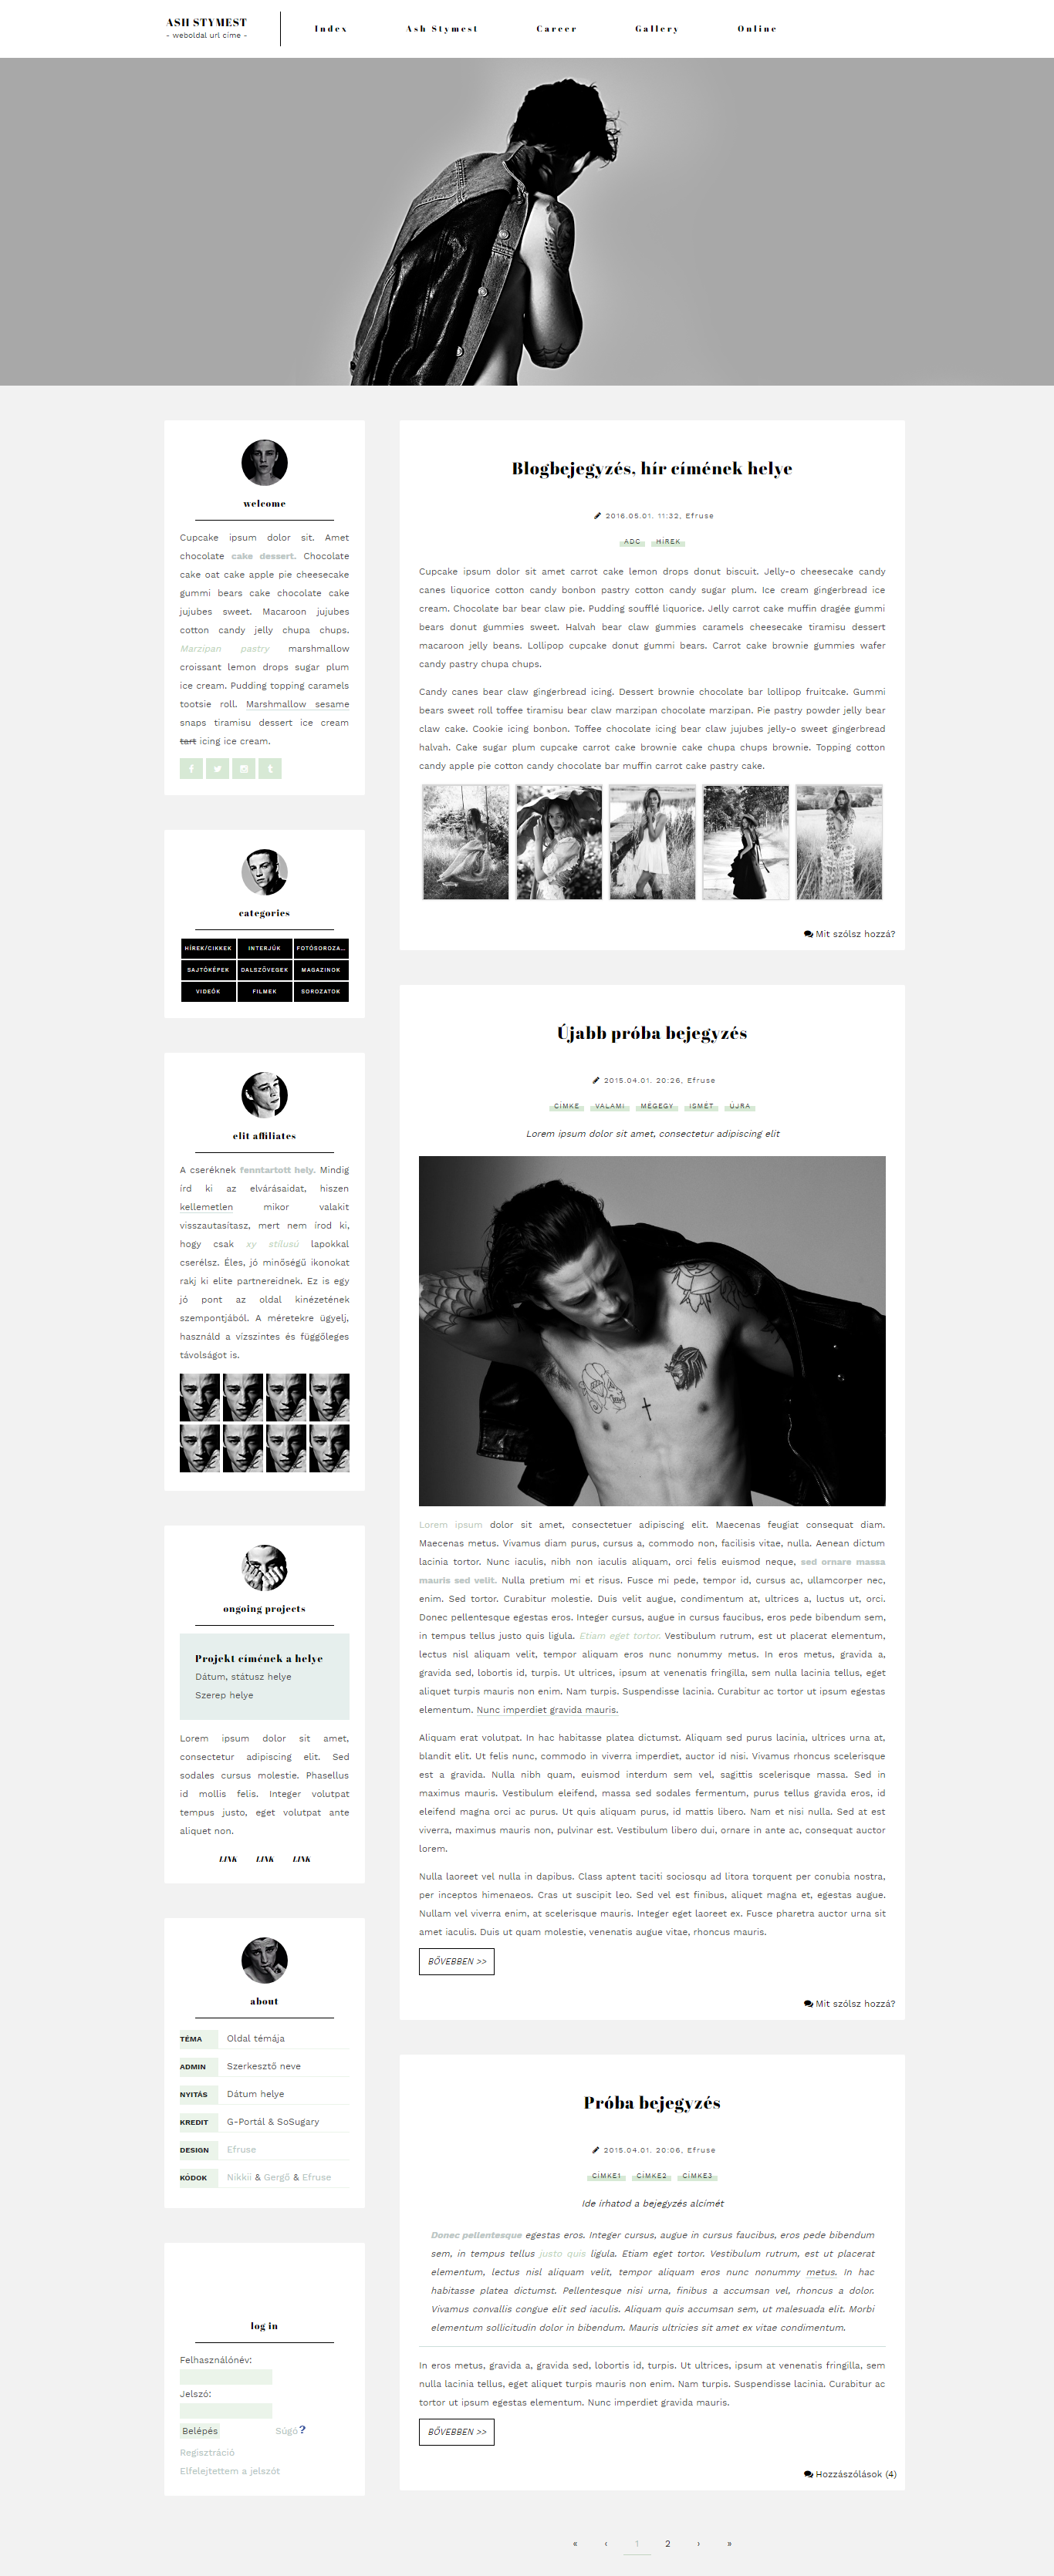 0002# free G-Portal layout with Ash Stymest